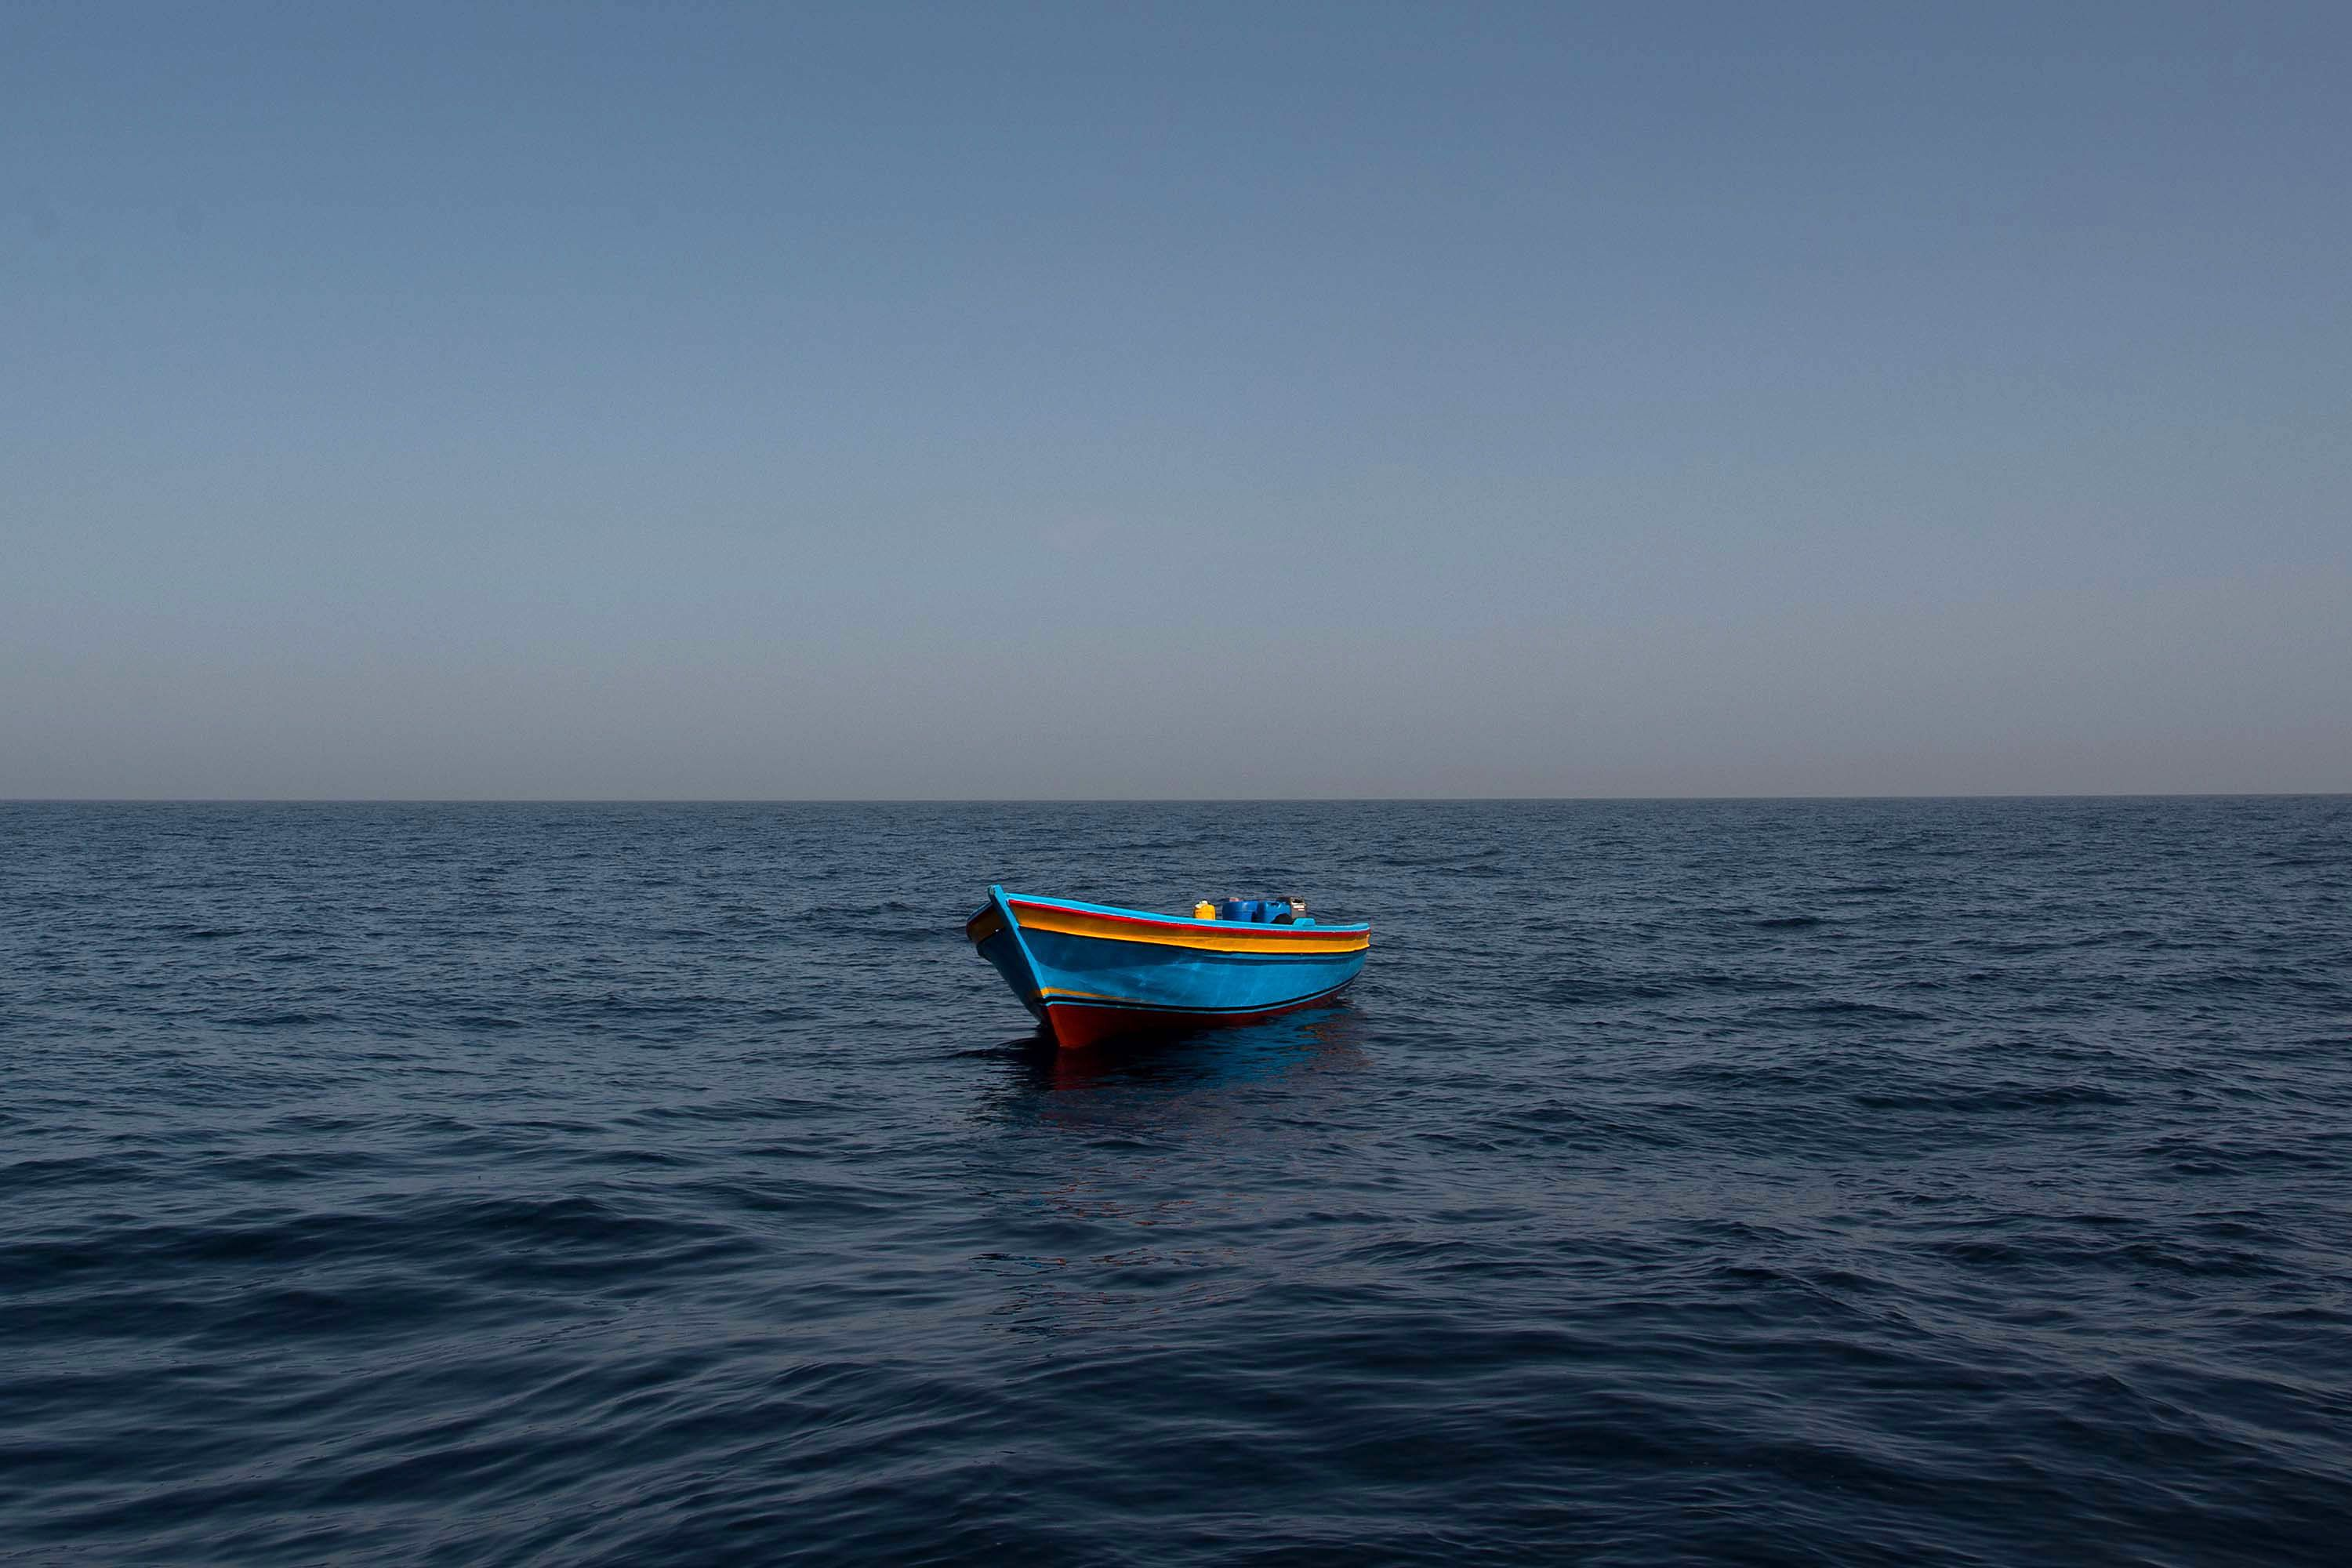 AT SEA, AT SEA - FEBRUARY 18:  An empty wooden boat is left behind after migrants and refugees were assisted by members of the Spanish NGO Proactiva Open Arms as they crowd it sailing out of control at 20 miles (38 km) north of Sabratha, Libya on February 18, 2017 at Sea. 466 migrants have been rescued in high seas since yesterday evening by the Italian Coast Guard and the Spanish NGO Proactiva Open Arms rescue vessel Golfo Azzurro as they continue to search for more boats. Proactiva Open Arms are a Spanish charity based out of Malta who provide search and rescue assistance to refugees and migrants in distress at sea. They patrol the SAR and Rescue Zone off the coast of Libya running rescue missions for the hundreds of migrants who continue to make the perilous journey across the Mediterranean in the hope of reaching the European mainland.  (Photo by David Ramos/Getty Images)